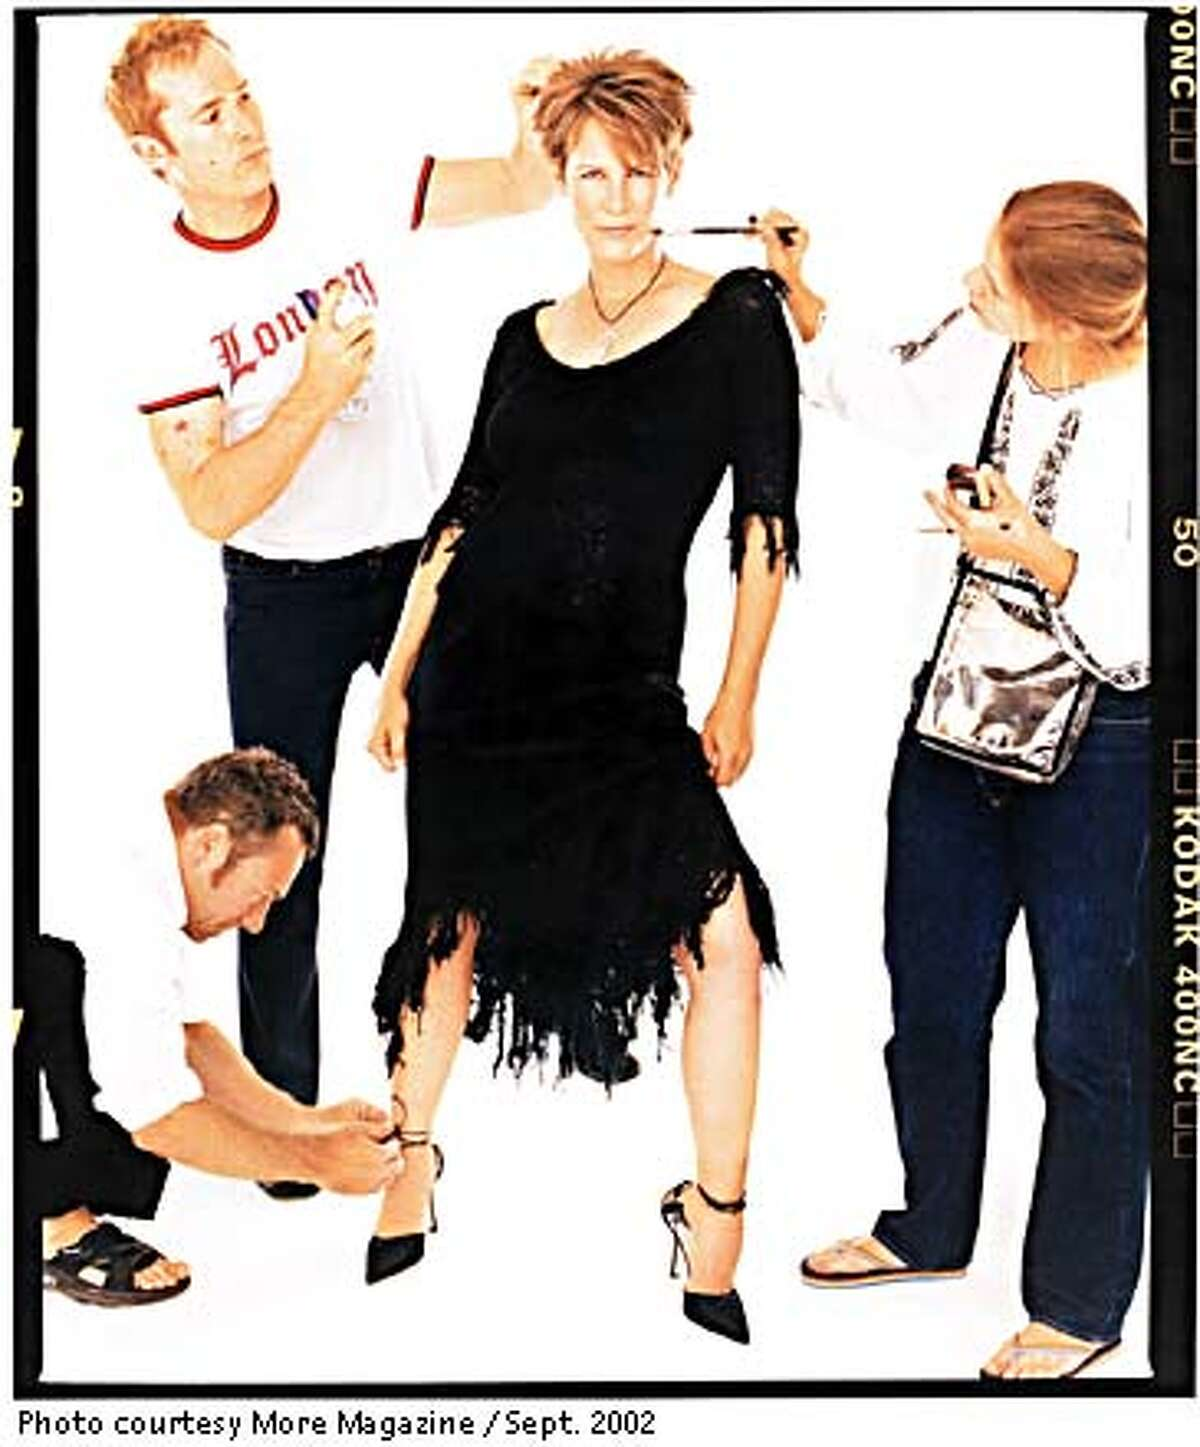 Jamie Lee Curtis after a three-hour makeover that involved the skills of 13 people. Photo courtesy of More Magazine, September 2002